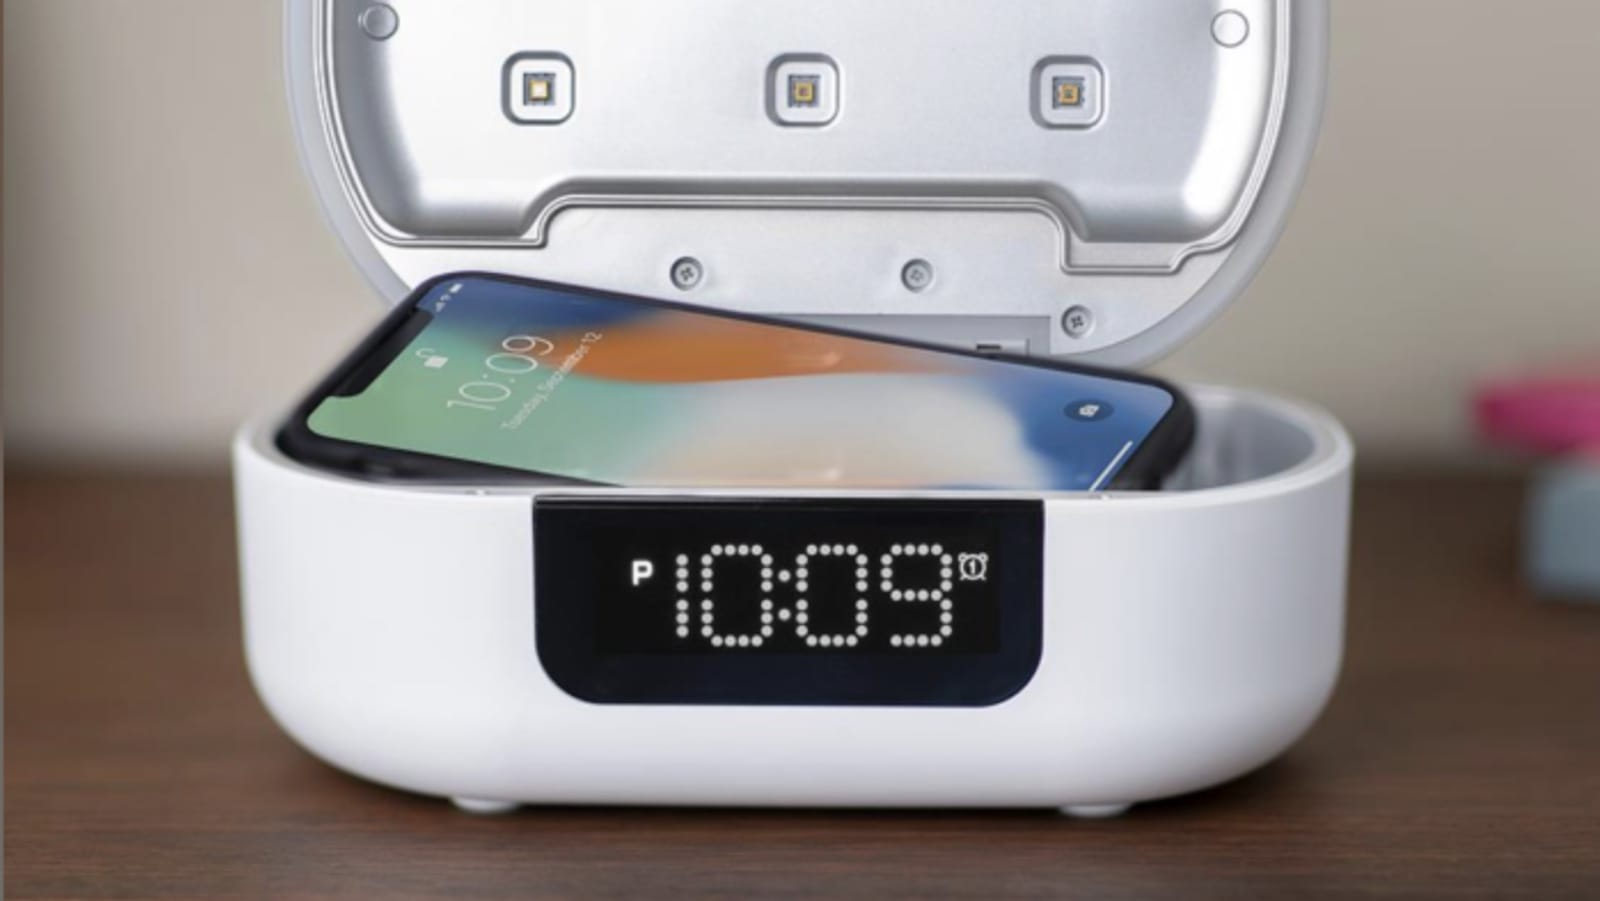 UV-C Sanitizing Alarm Clock has a built-in Bluetooth speaker